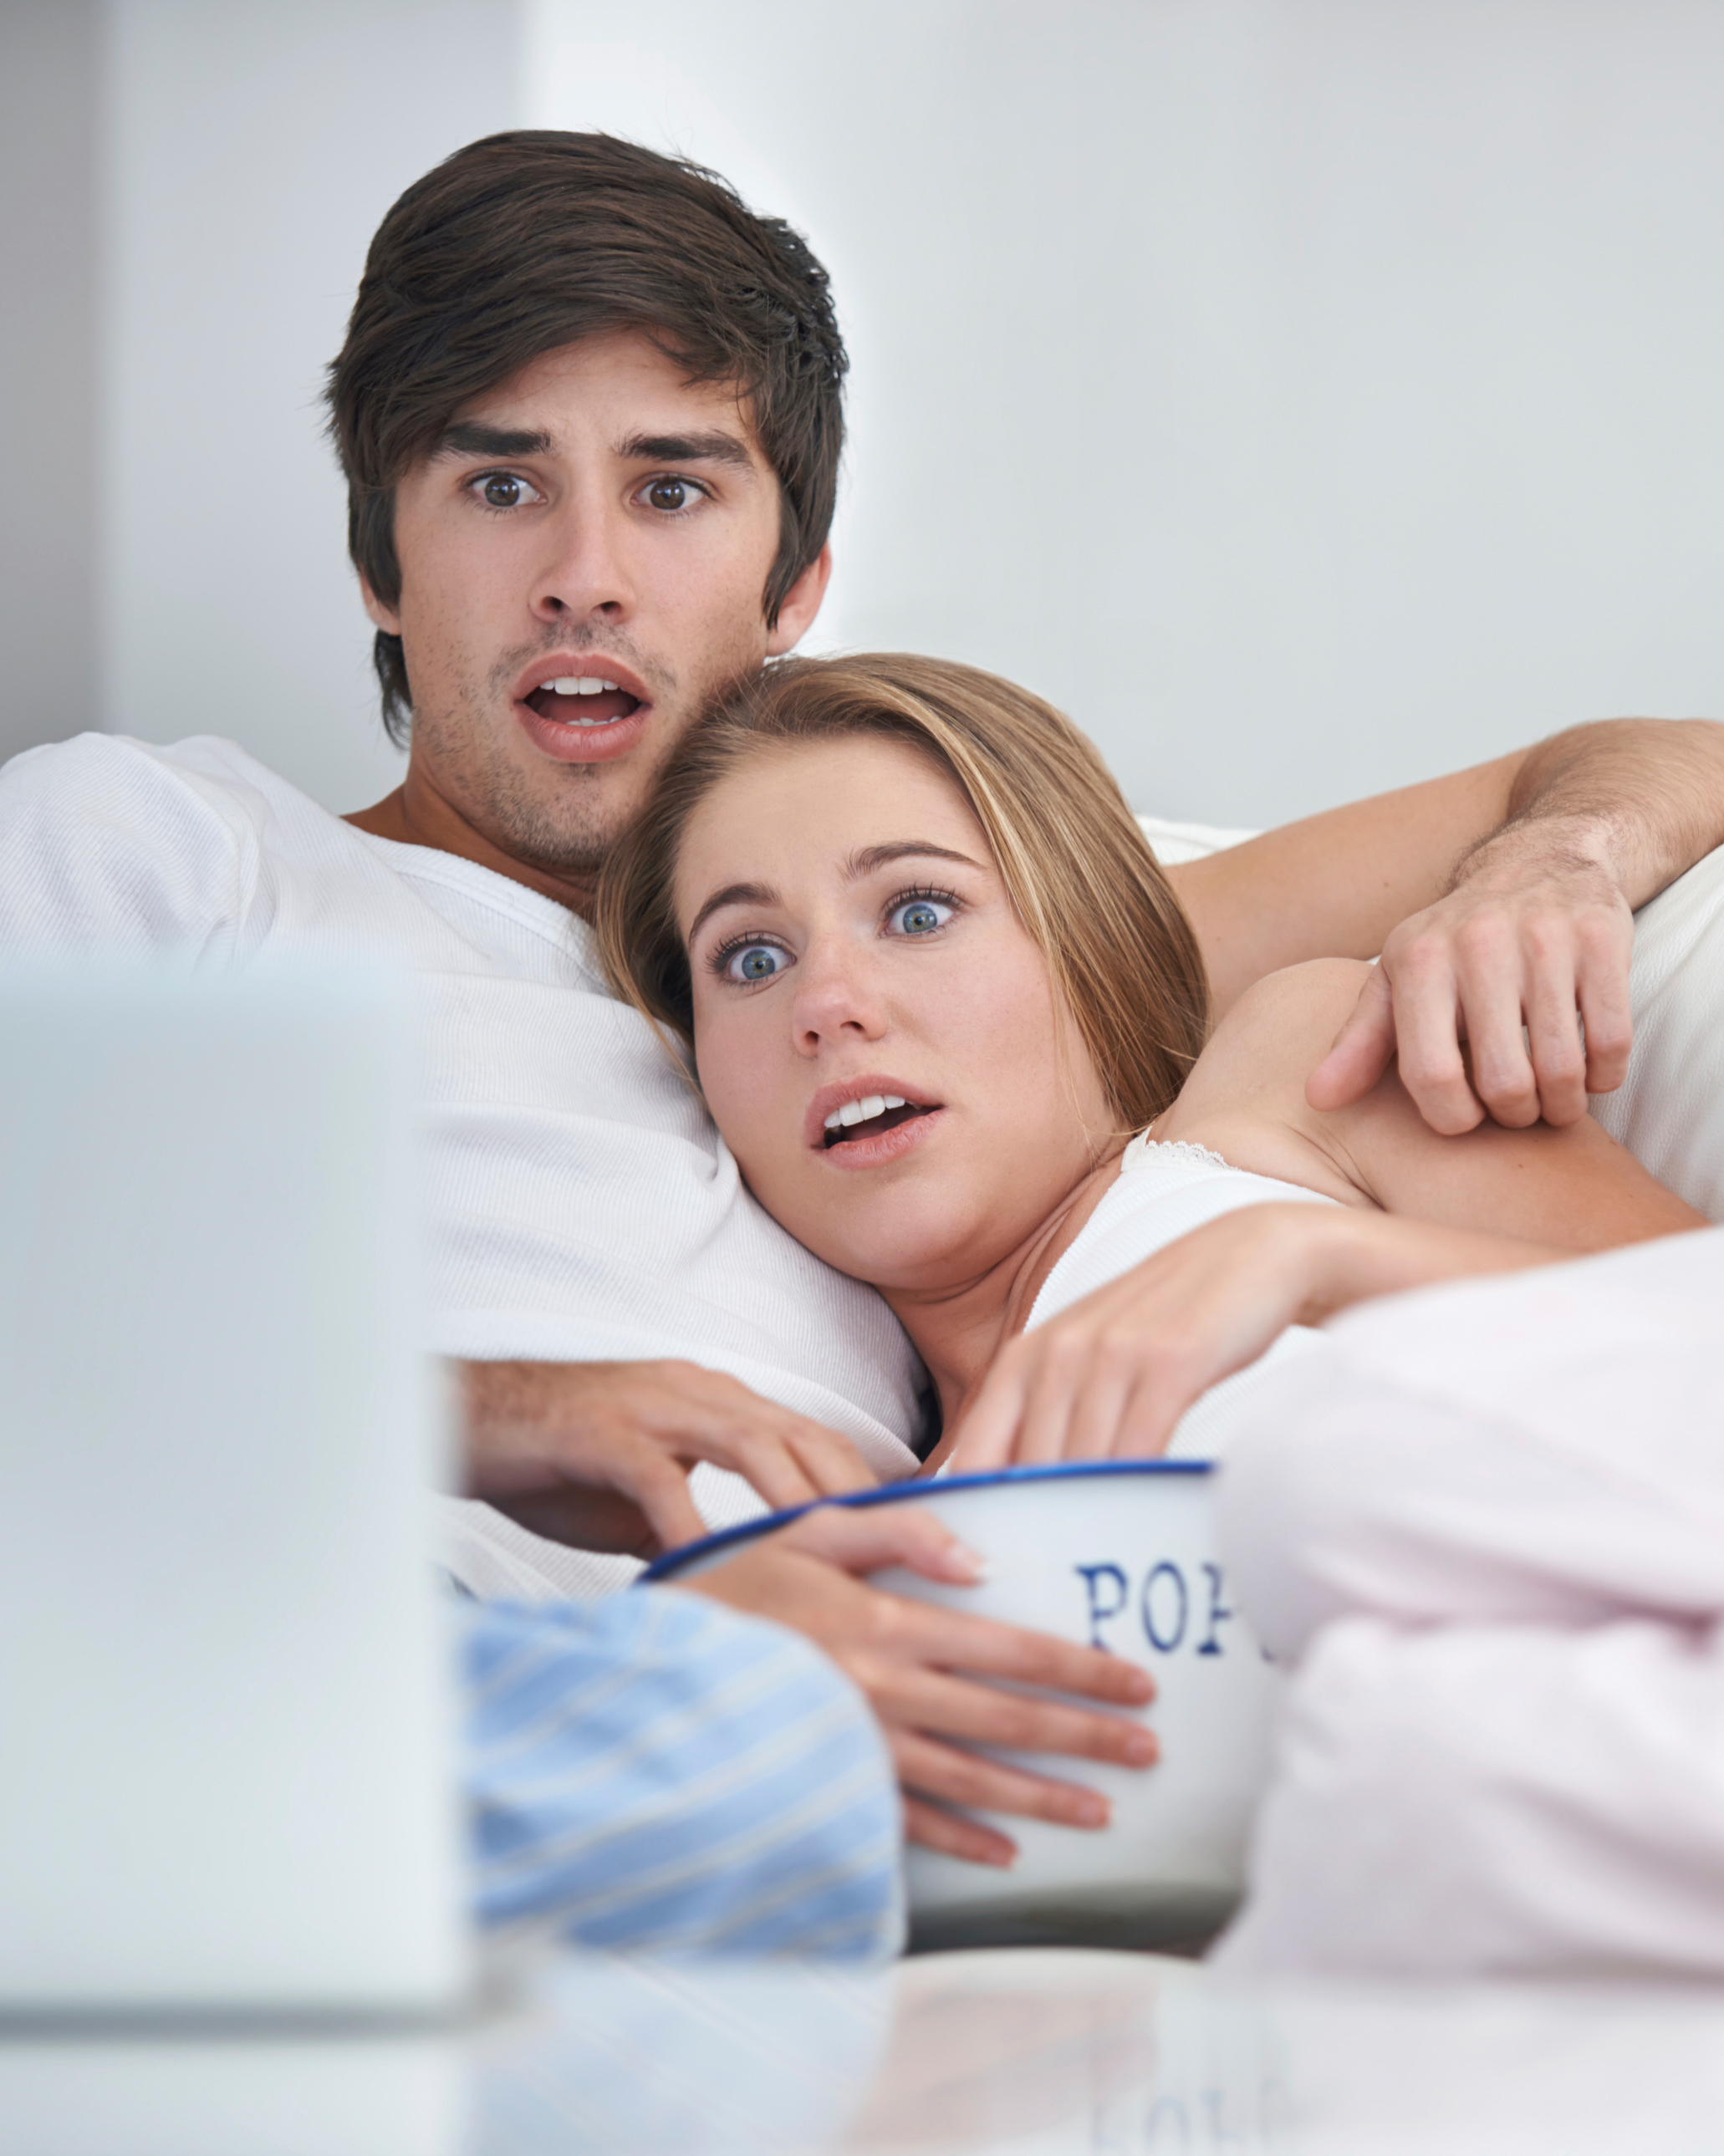 shocked-scared-couple-on-couch-watching-movie-with-popcorn-0116.jpg